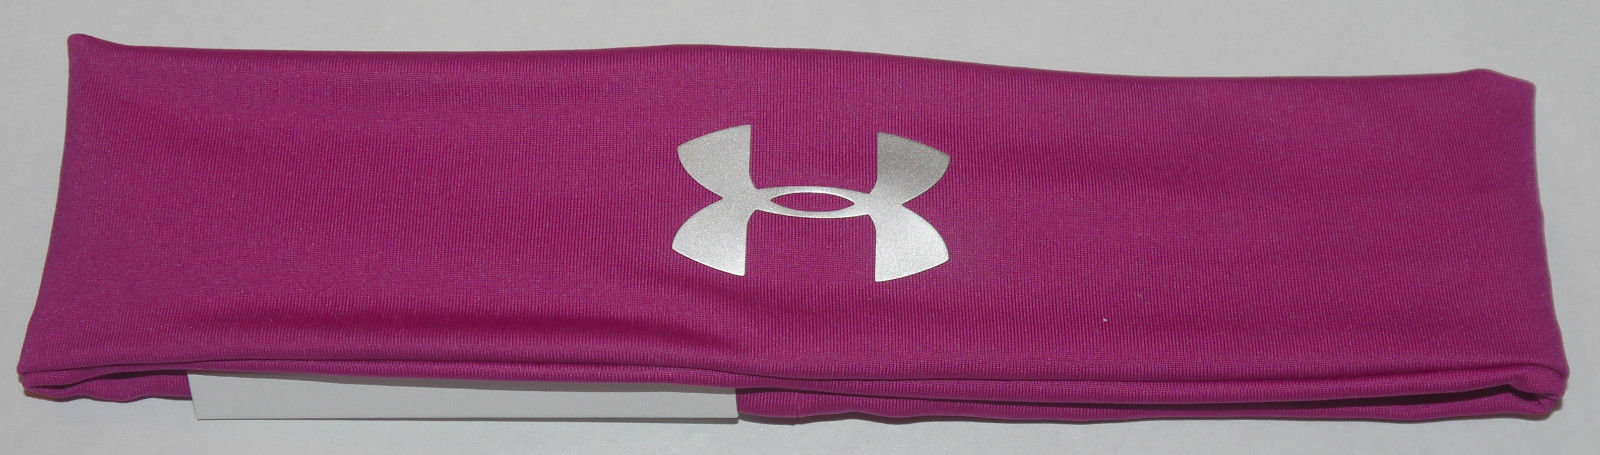 Under Armour Women's Magenta Shock/Silver Metallic UA Headband (One Size) 12831